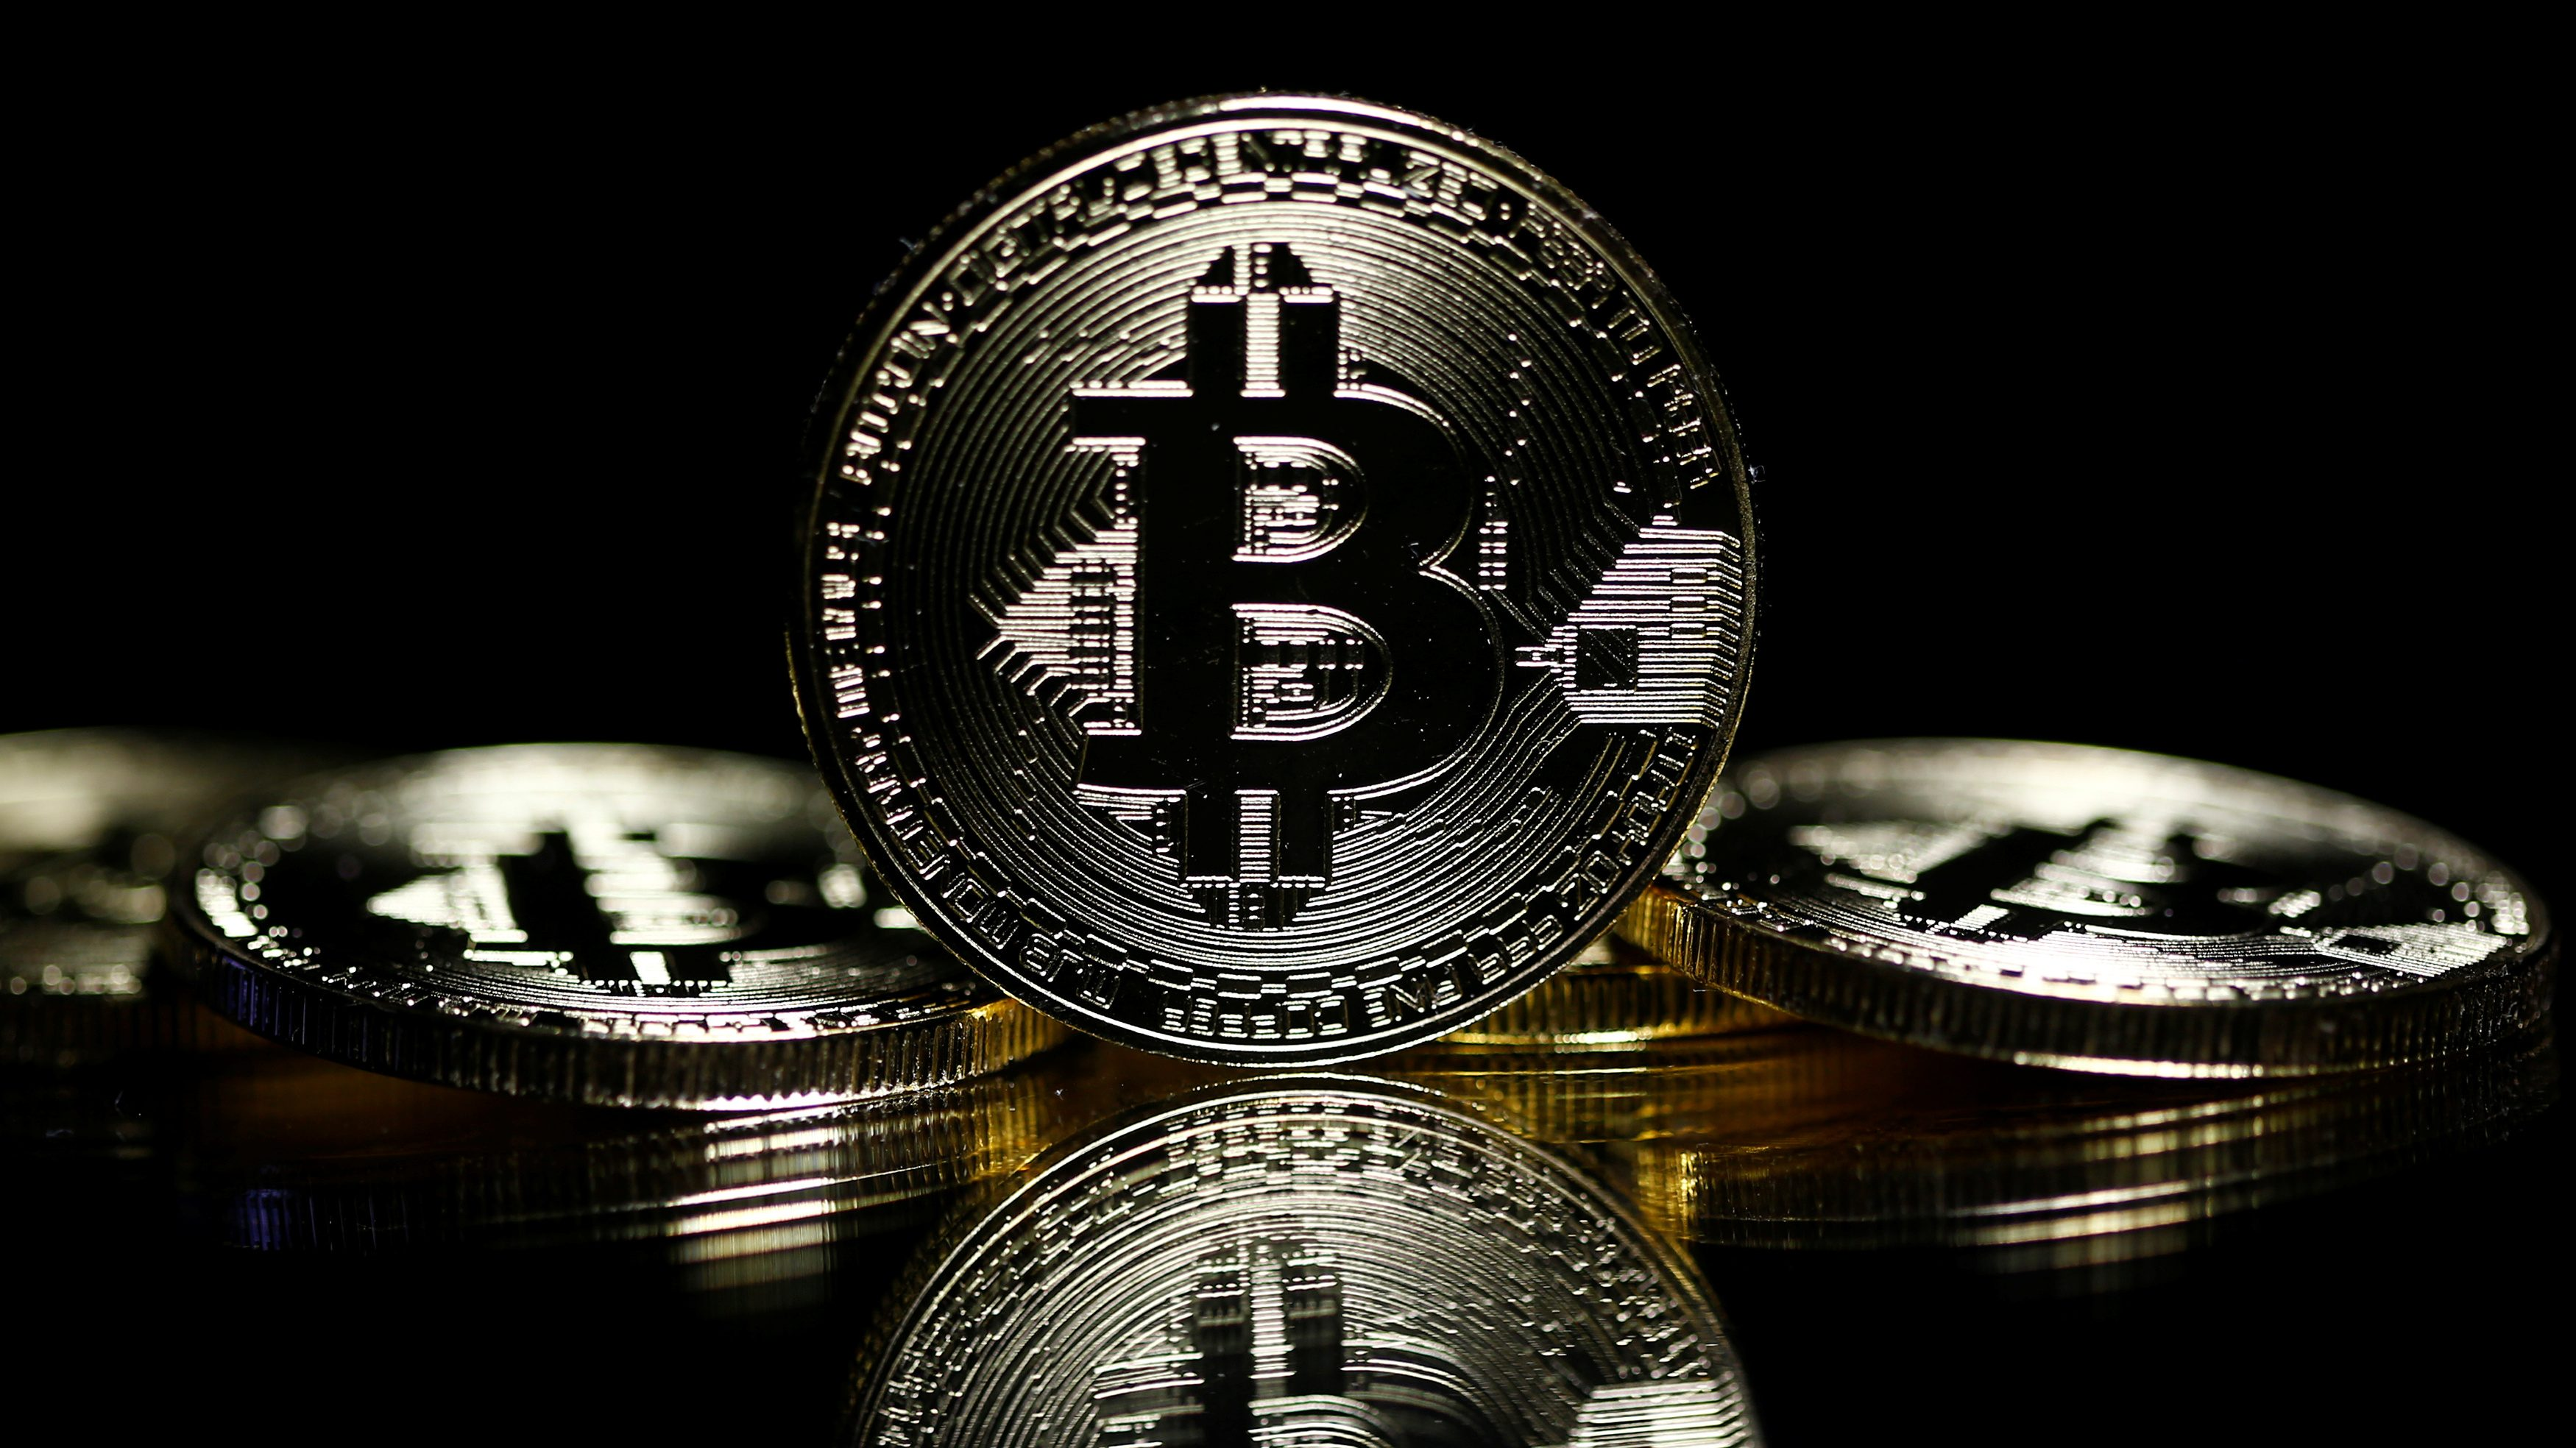 Bitcoin's (BTC) new record price of $6,000 means Satoshi Nakamoto is